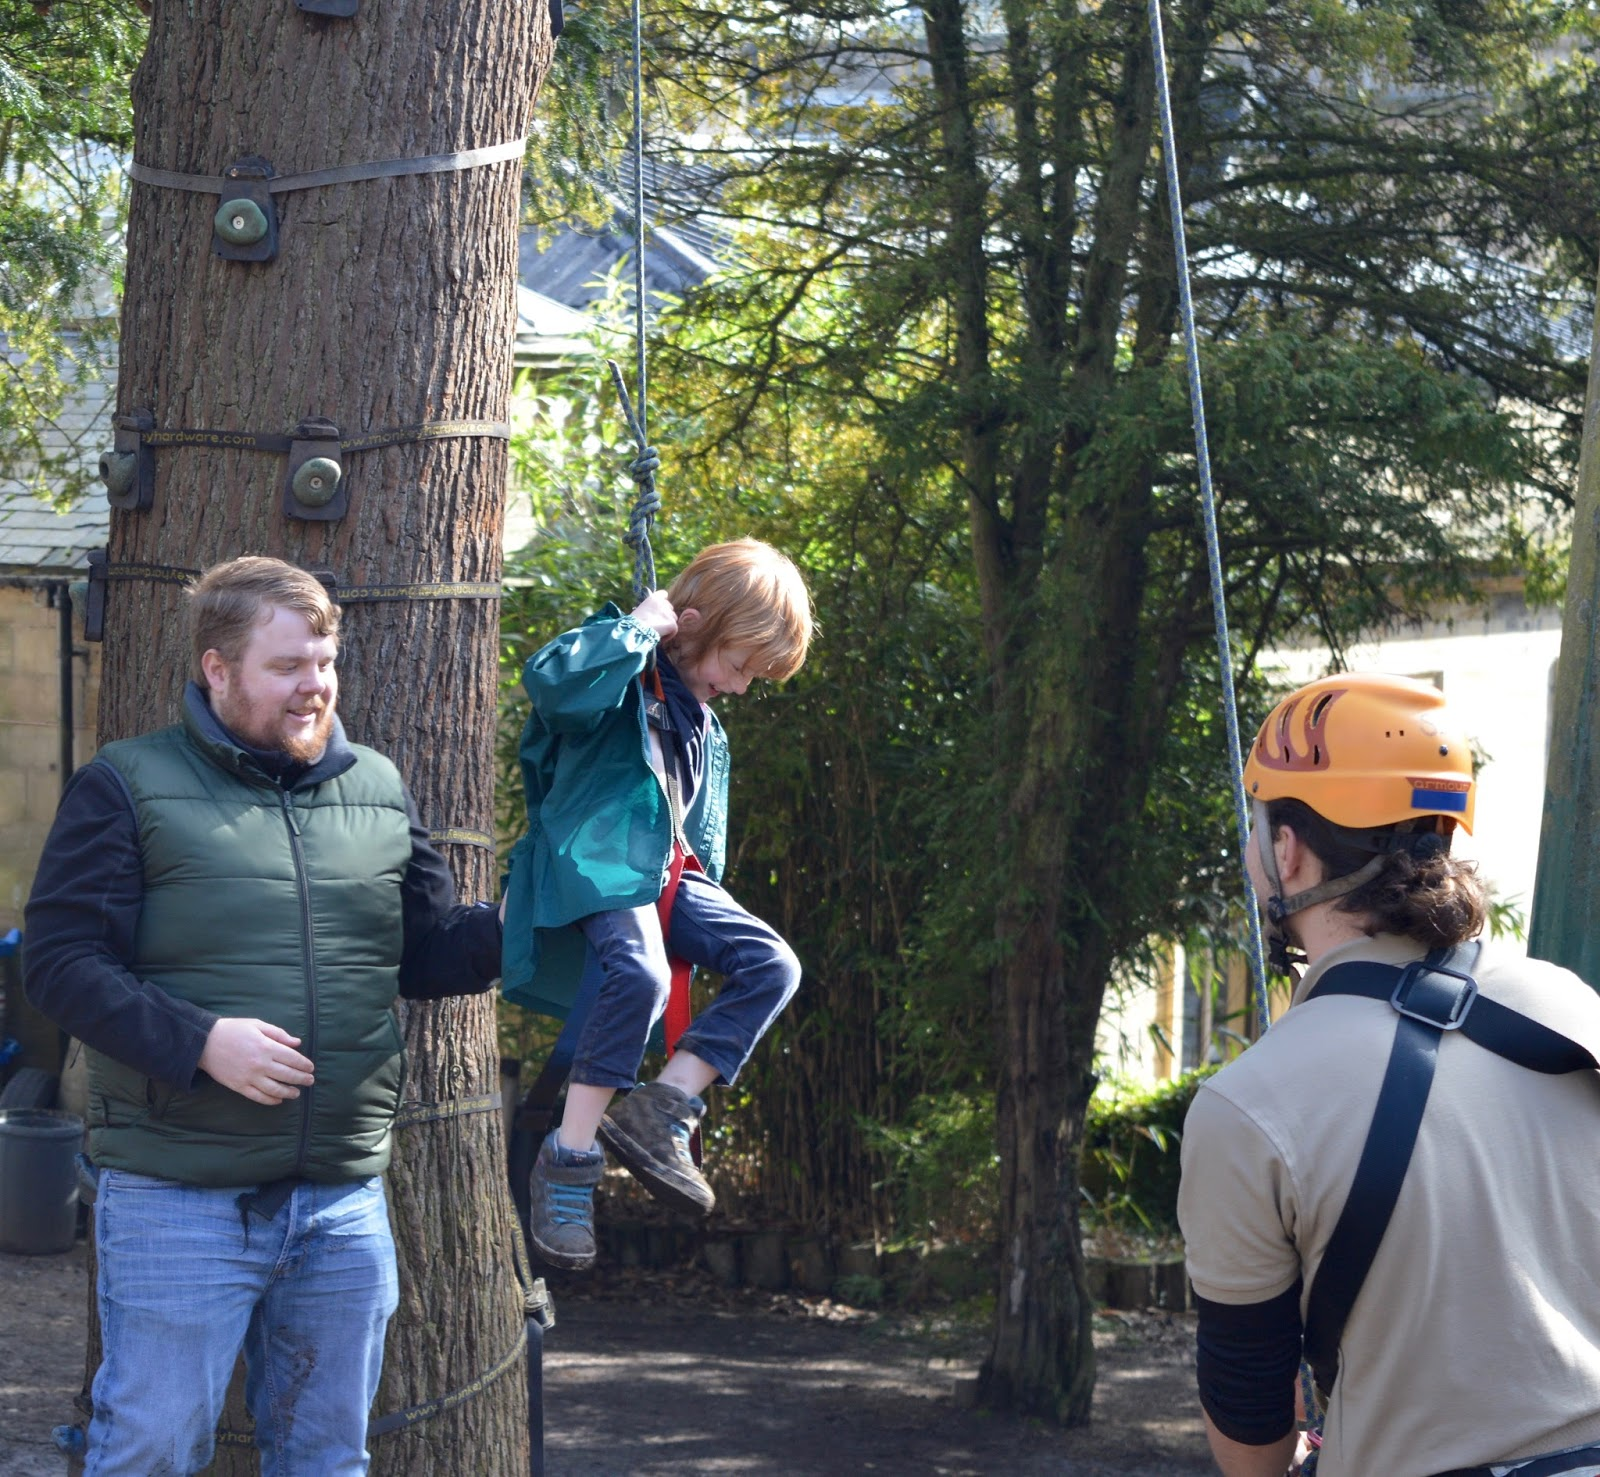 Beamish Wild | School Holiday Club & Activities in County Durham | North East England - tree creeper harness